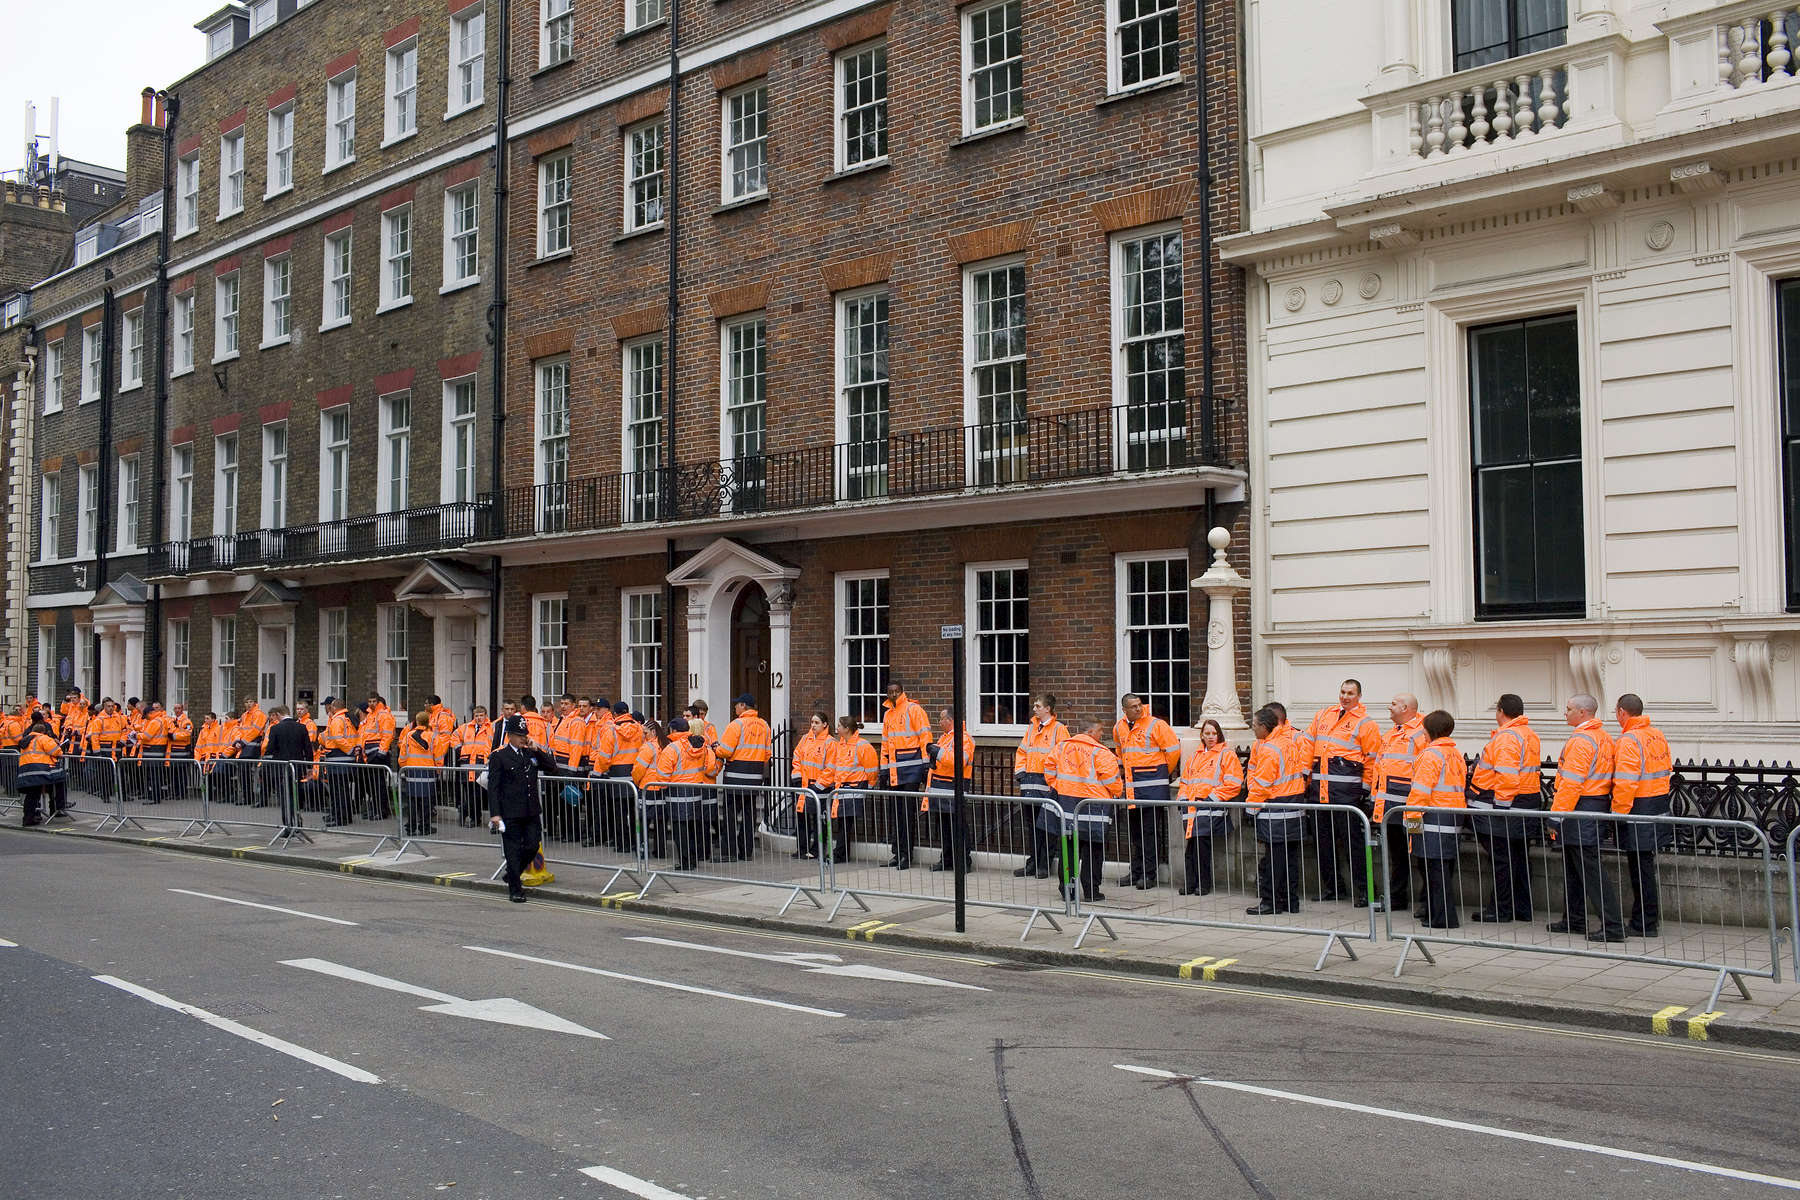 Security await deployment on the day of the Royal Wedding between Prince William and Kate Middleton.